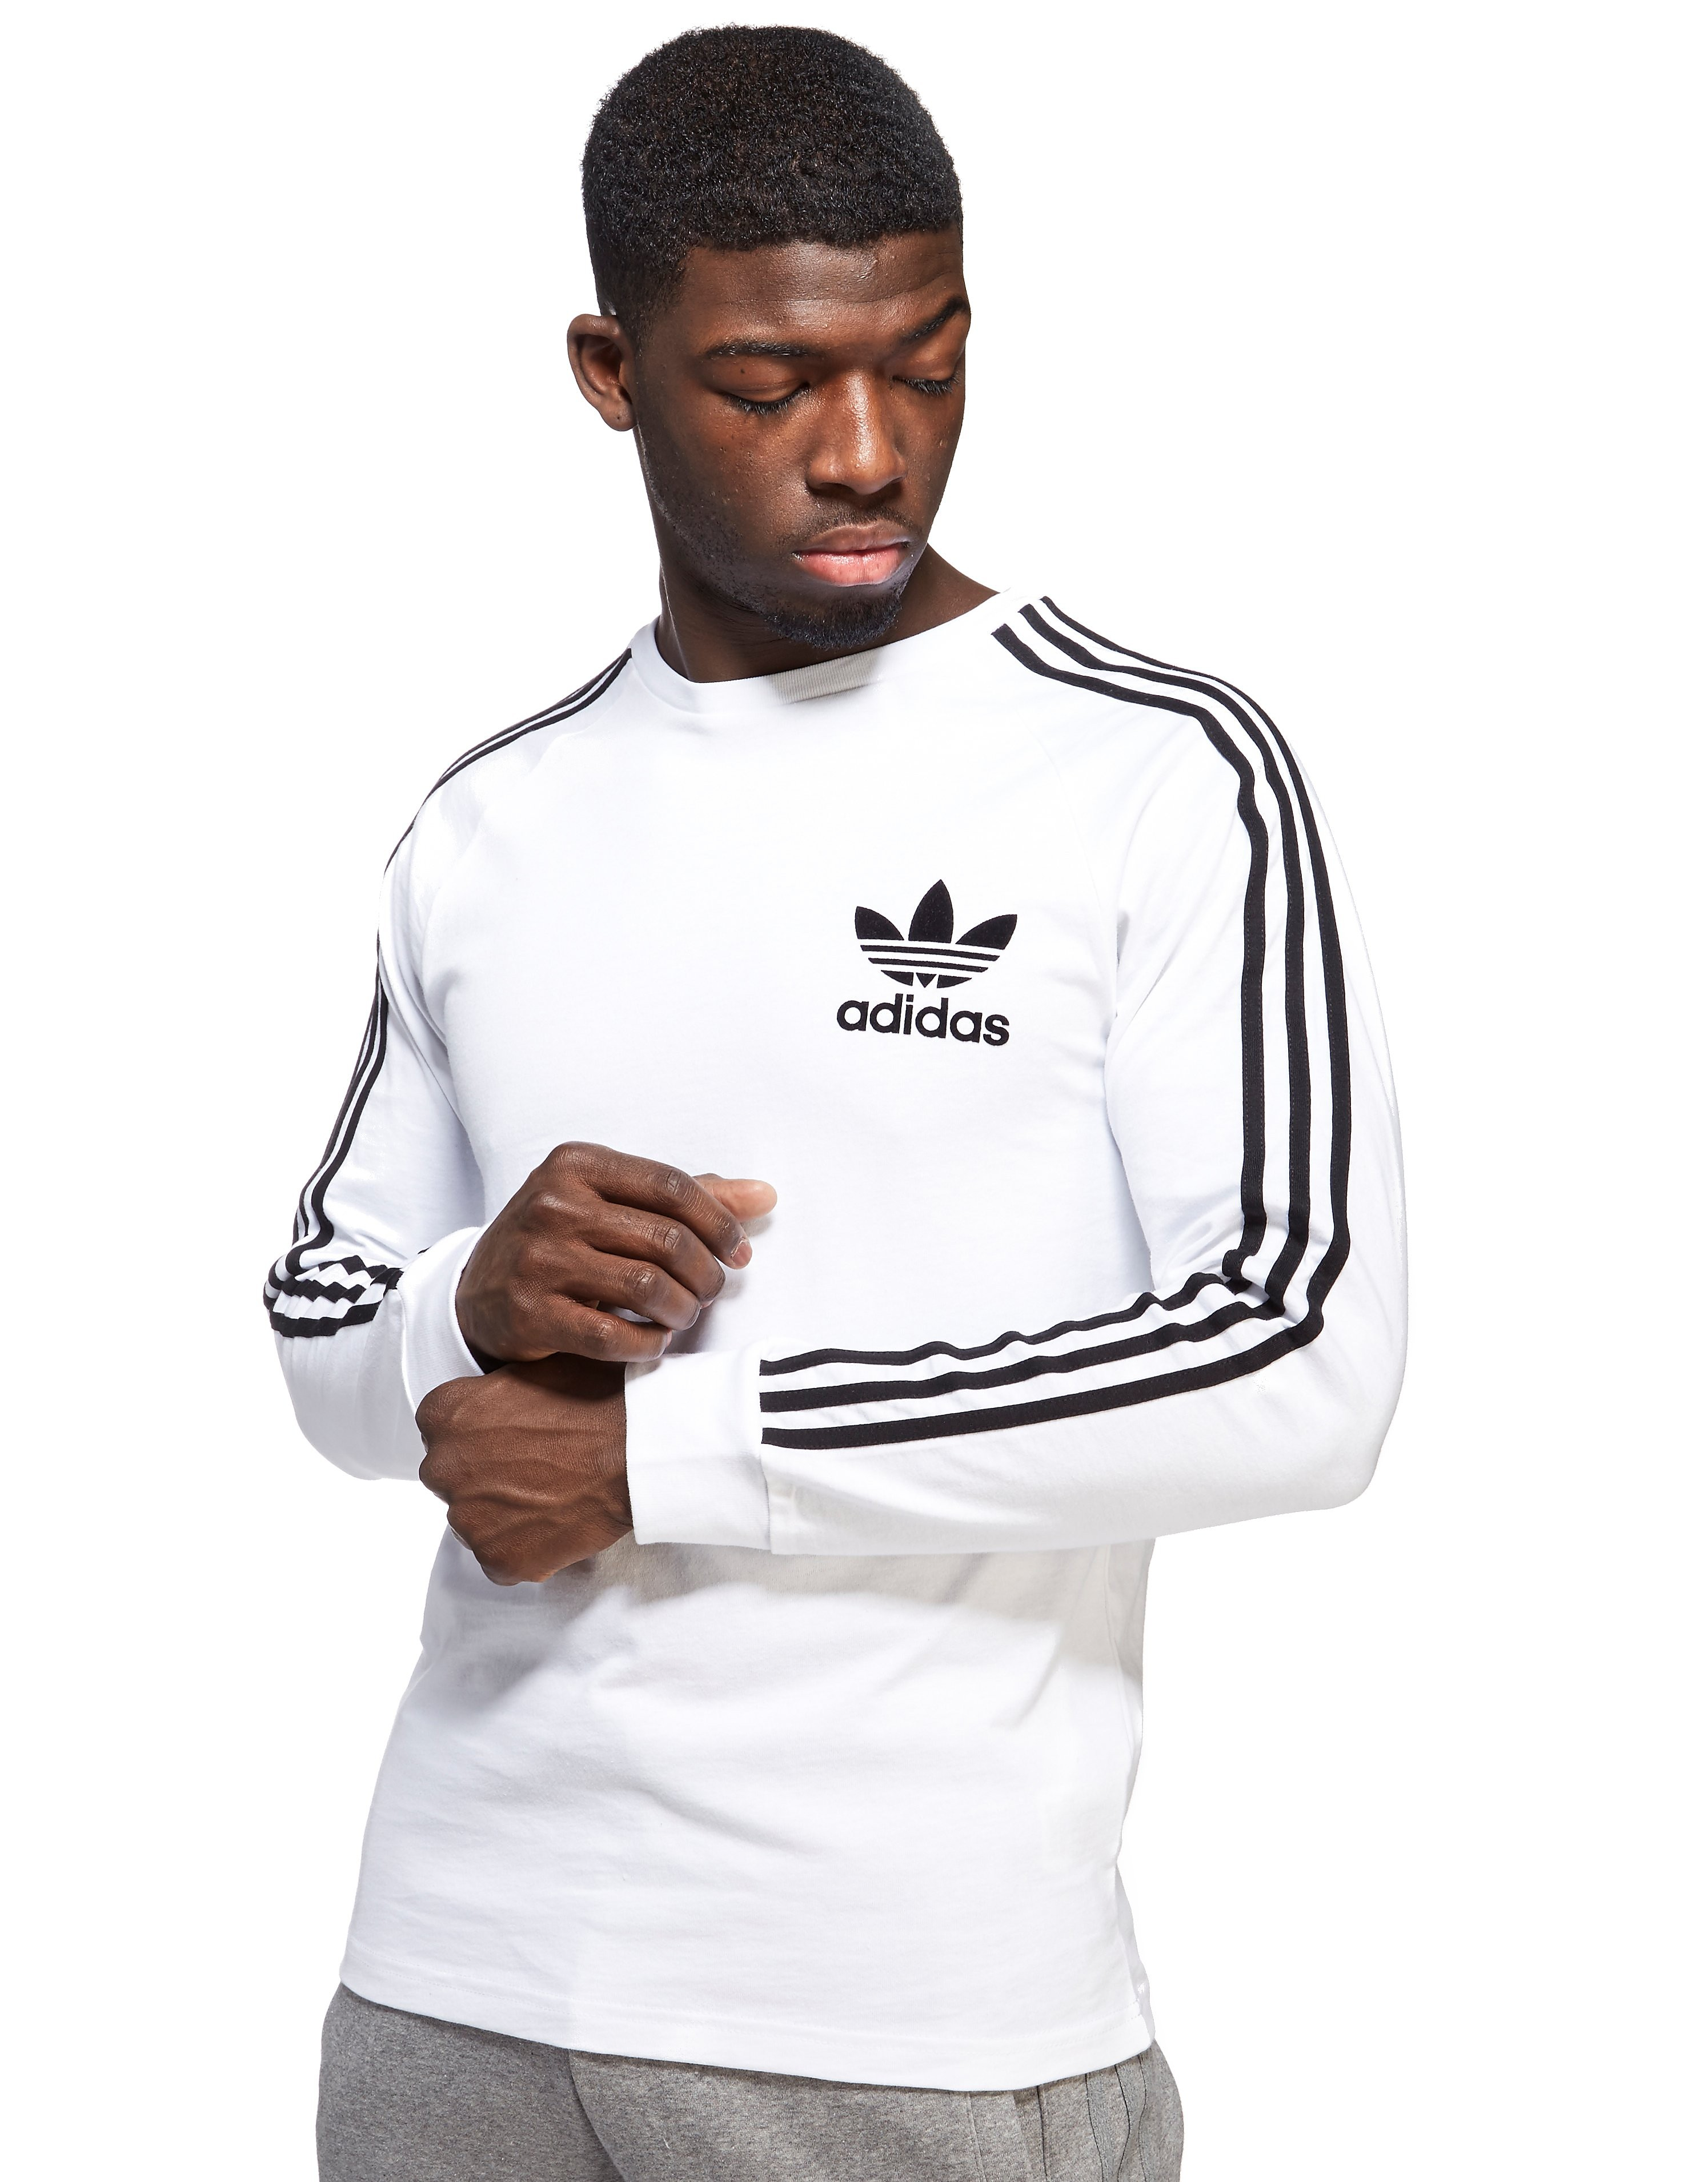 adidas Originals T-Shirt à manches longues California Homme